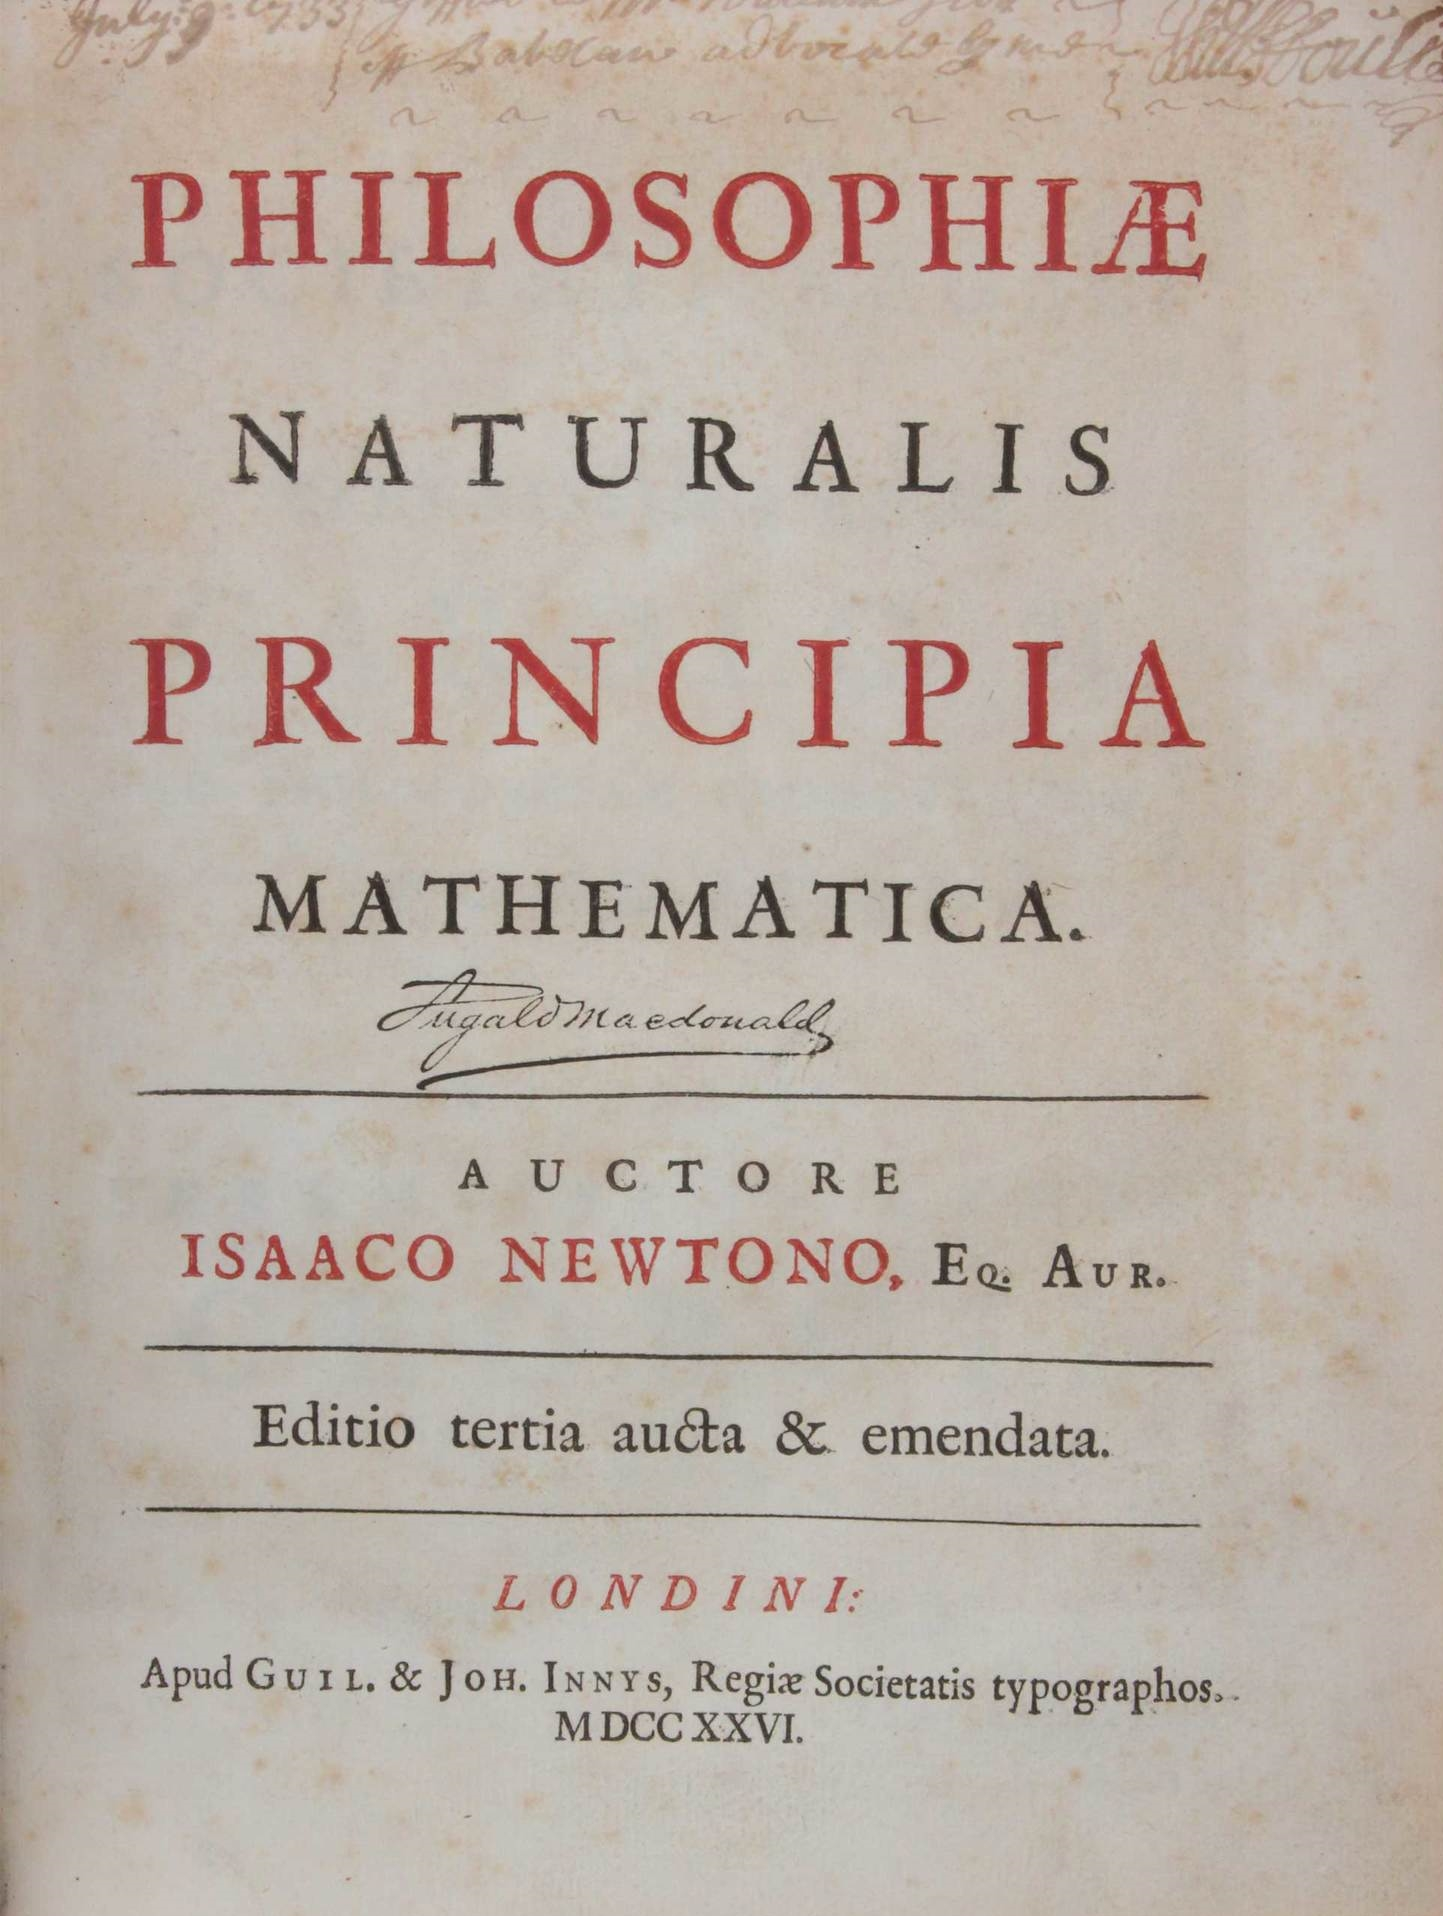 Isaac Newton's work in which he introduces the theory of universal gravitation. NoticePhilosophiæ Naturalis, or Natural Philosophy.